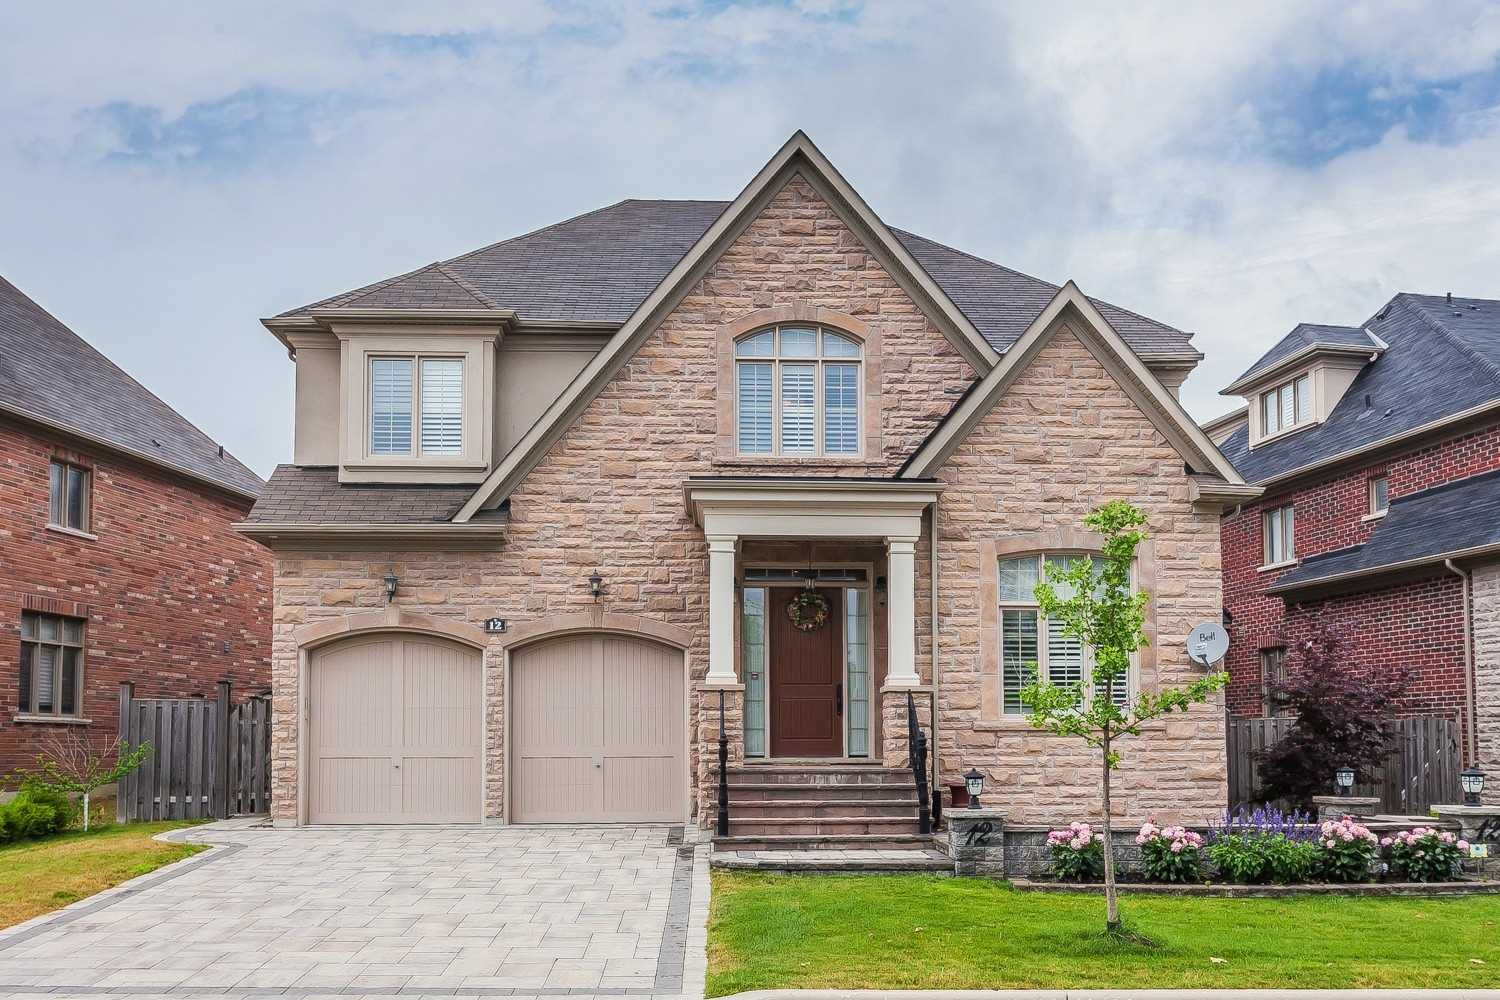 Main Photo: 12 Stollery Pond Cres in Markham: Angus Glen Freehold for sale : MLS®# N4827492